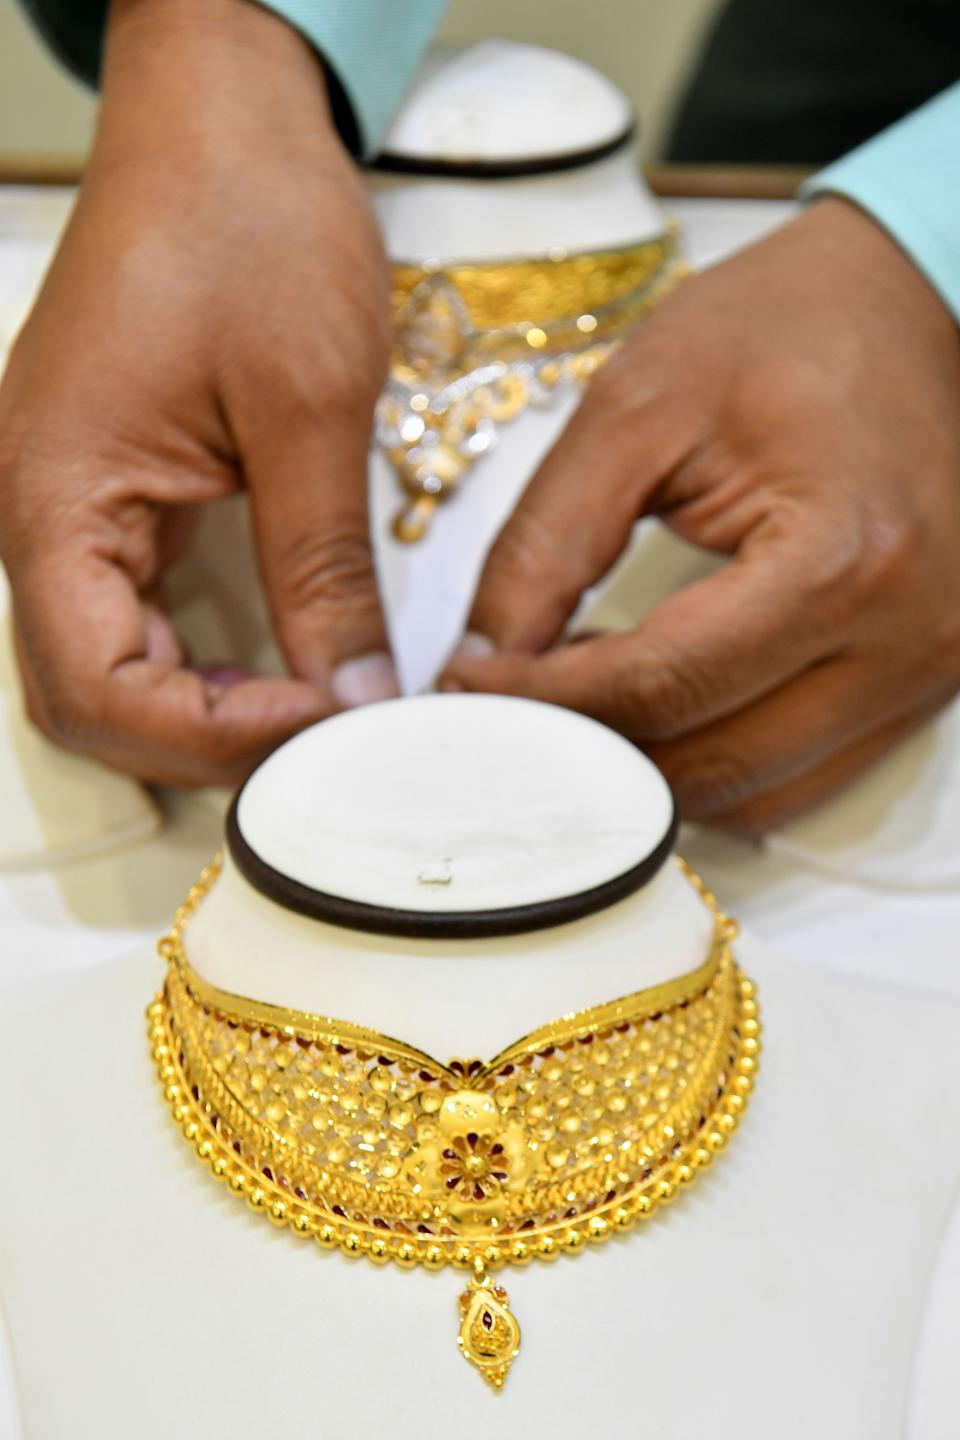 <strong>Launched by Government of India in 2015,</strong> under the Gold Monetisation Scheme (GMS) one can deposit their gold in any form in a GMS account to earn interest as the price of the gold metal goes up. The benefits of gold monetisation scheme are many including -- mobilise idle gold, earn interest, avail secured storage, enjoy tax benefit, get flexibility on redemption, and reduce the government's reliance on gold imports.